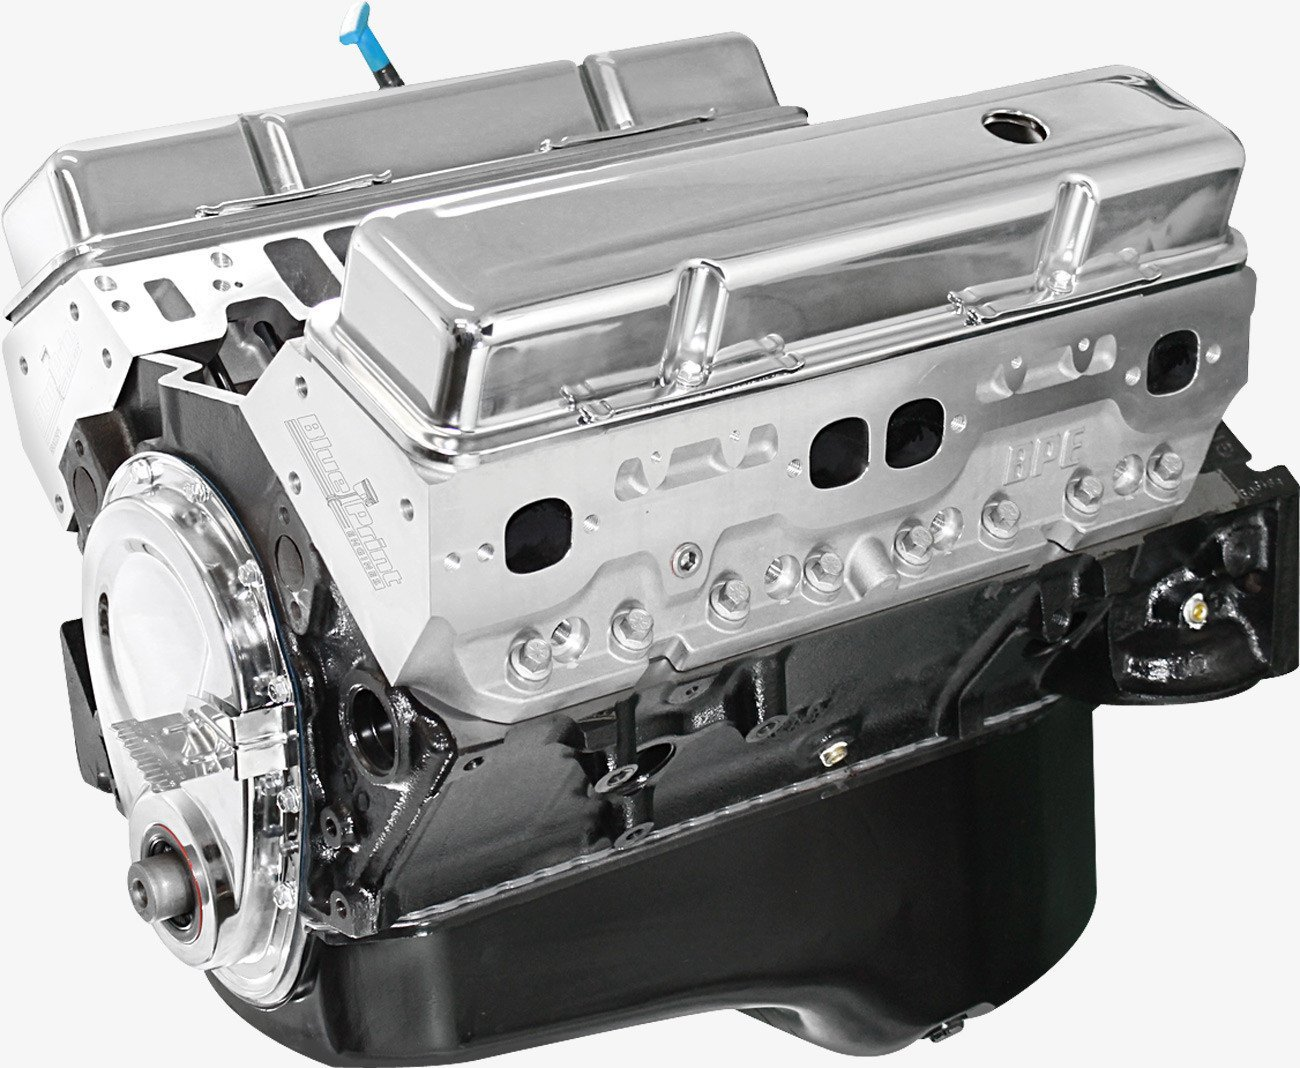 Crate Engine - SBC 383 440HP Base Model